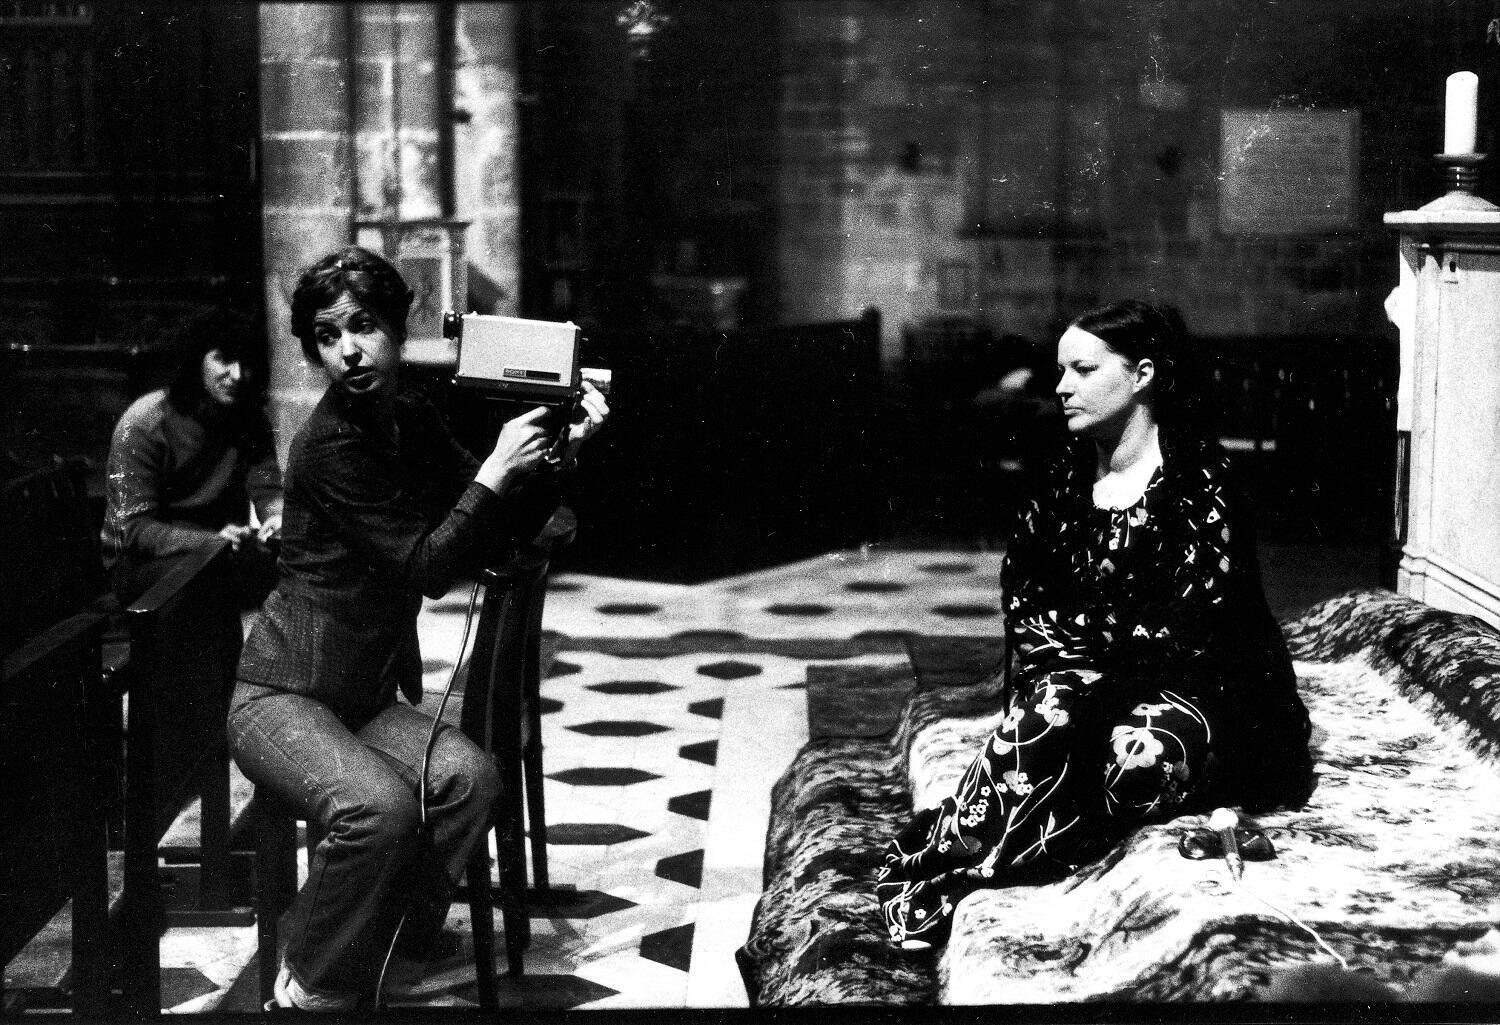 Carole Roussopoulos on the video-shoot of 'Les prostituées de Lyon parlent', 1975. The video film by the Insoumuses Collective gave voice to otherwise silent and invisible womenin the city of Lyons